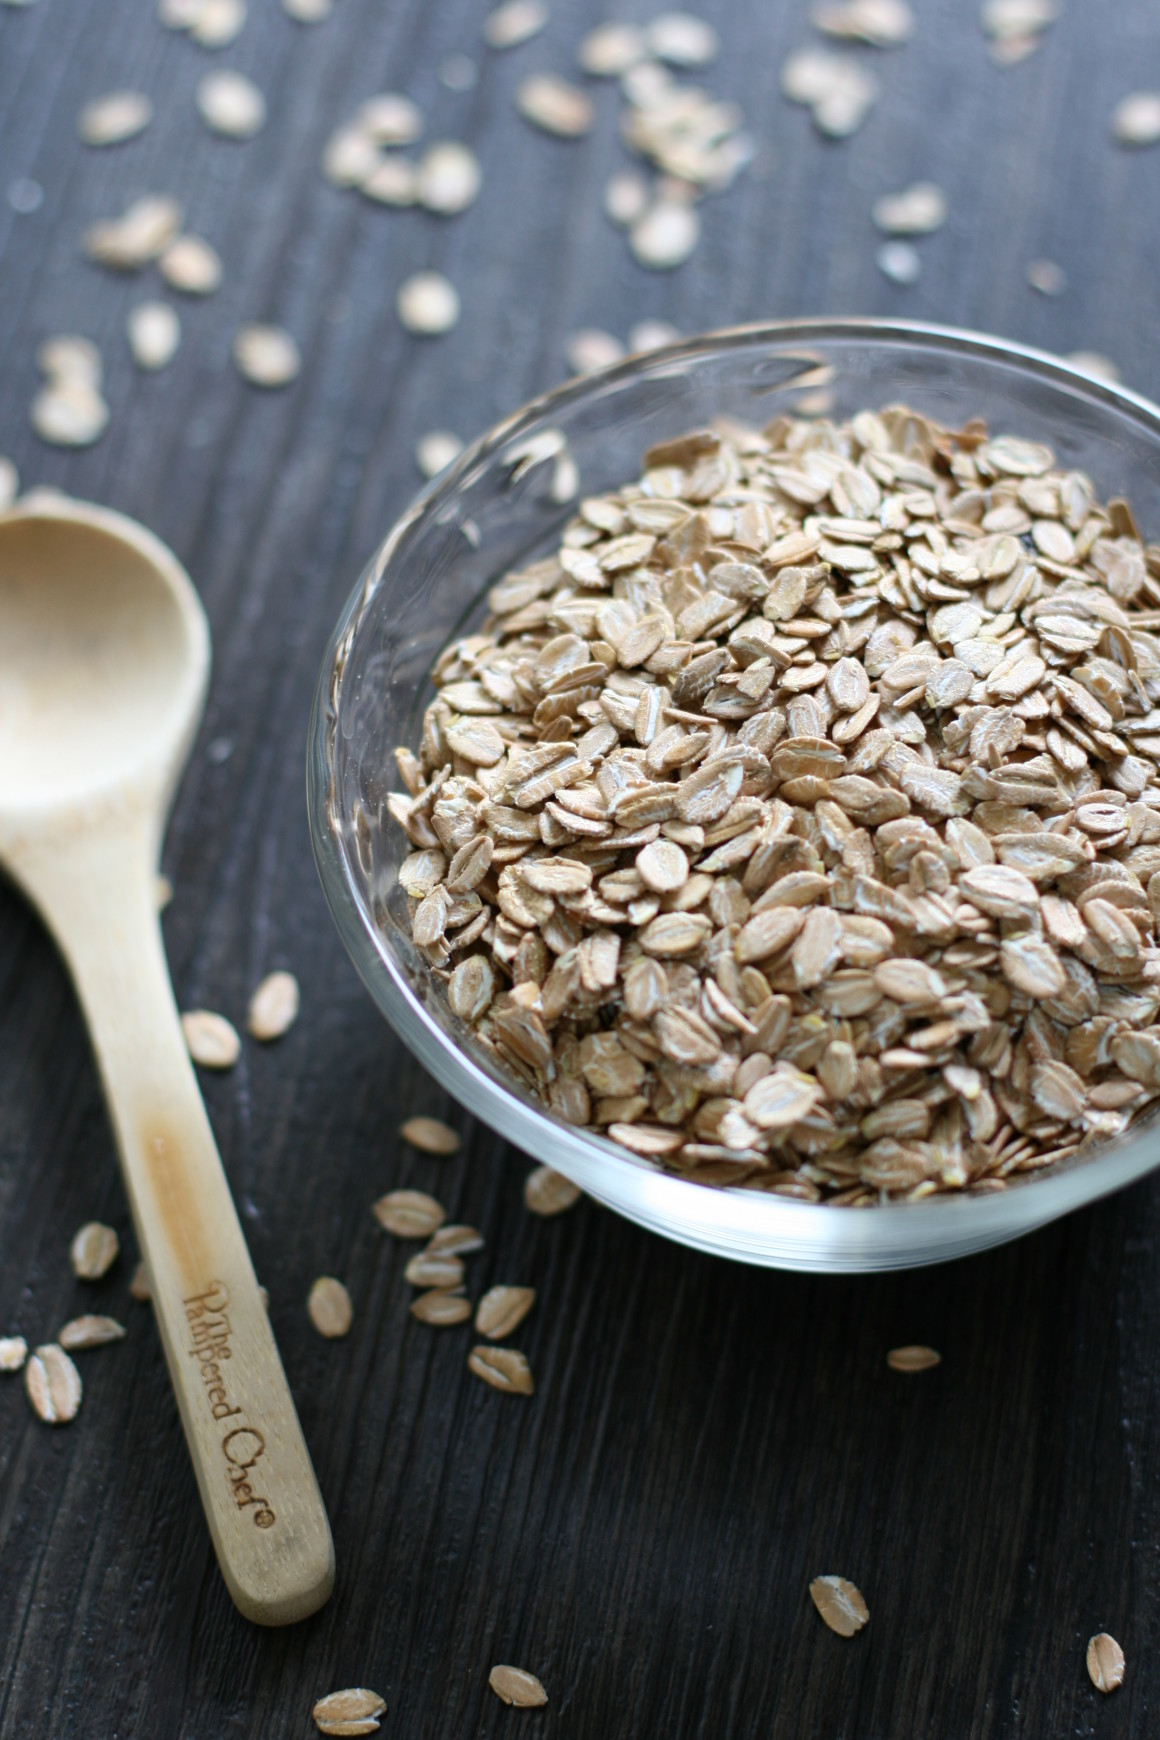 Step 8: Ditch the Cereal and Make Soaked Oatmeal